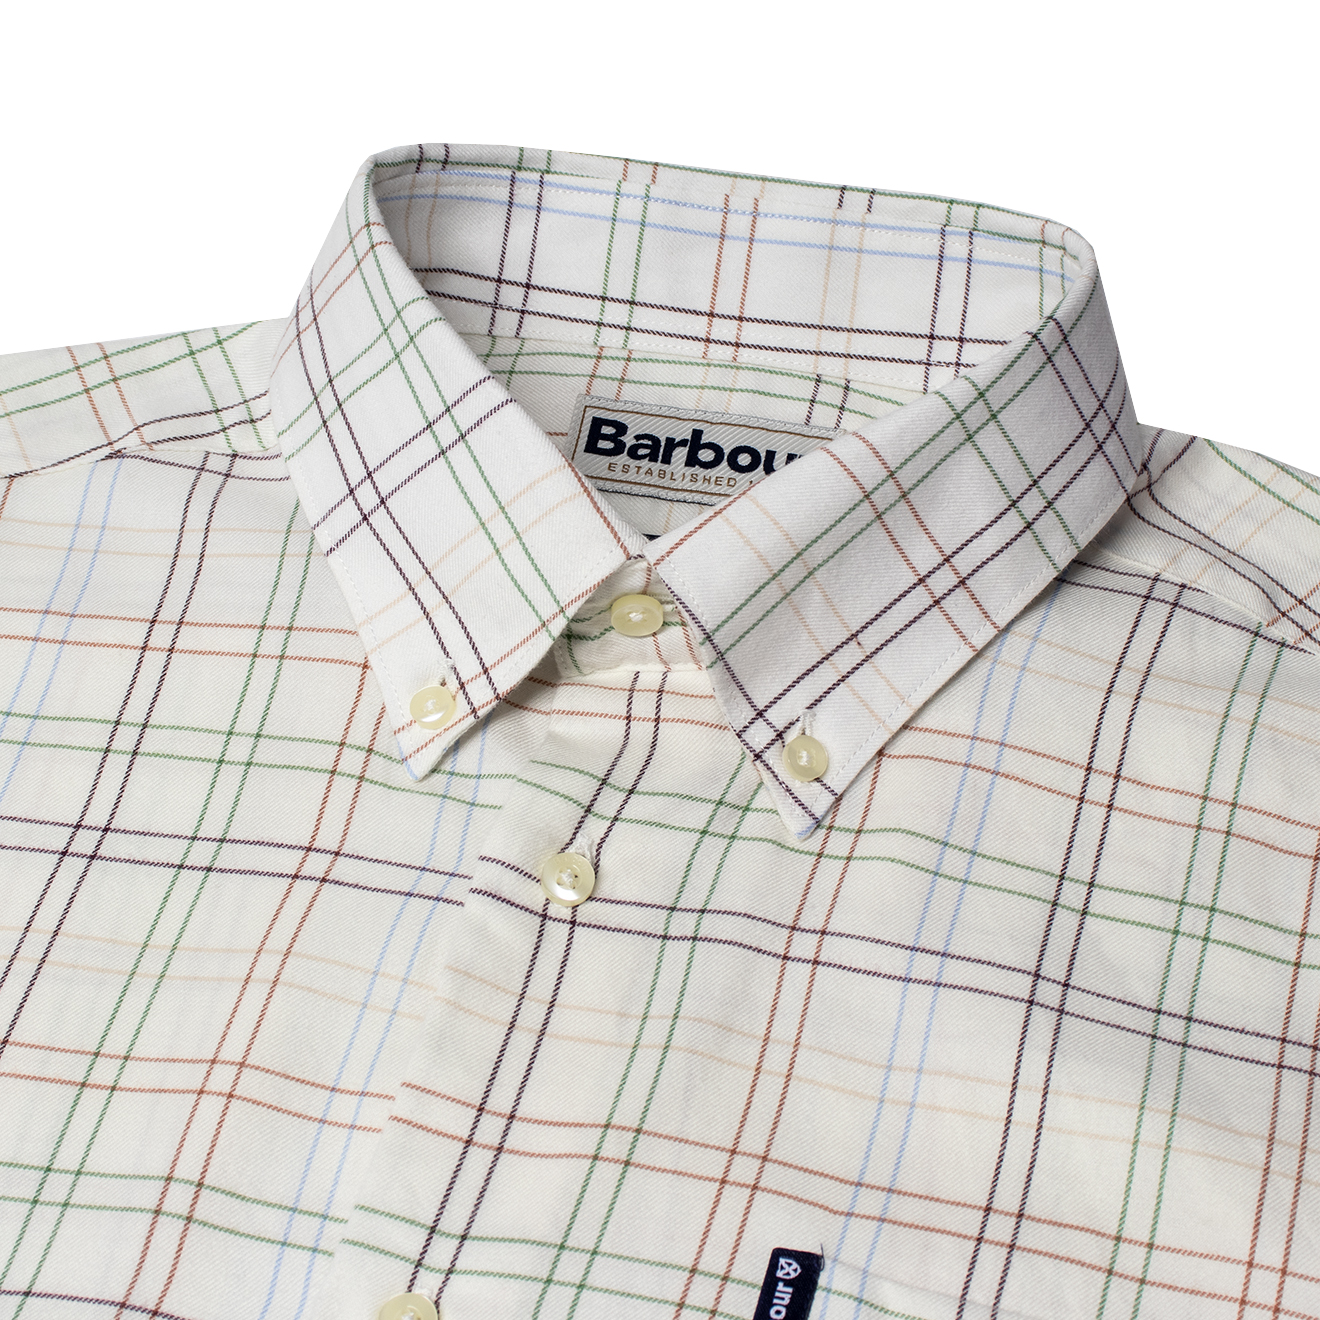 Barbour Tailored Fit Tattersall 20 Shirt Brown   The ...